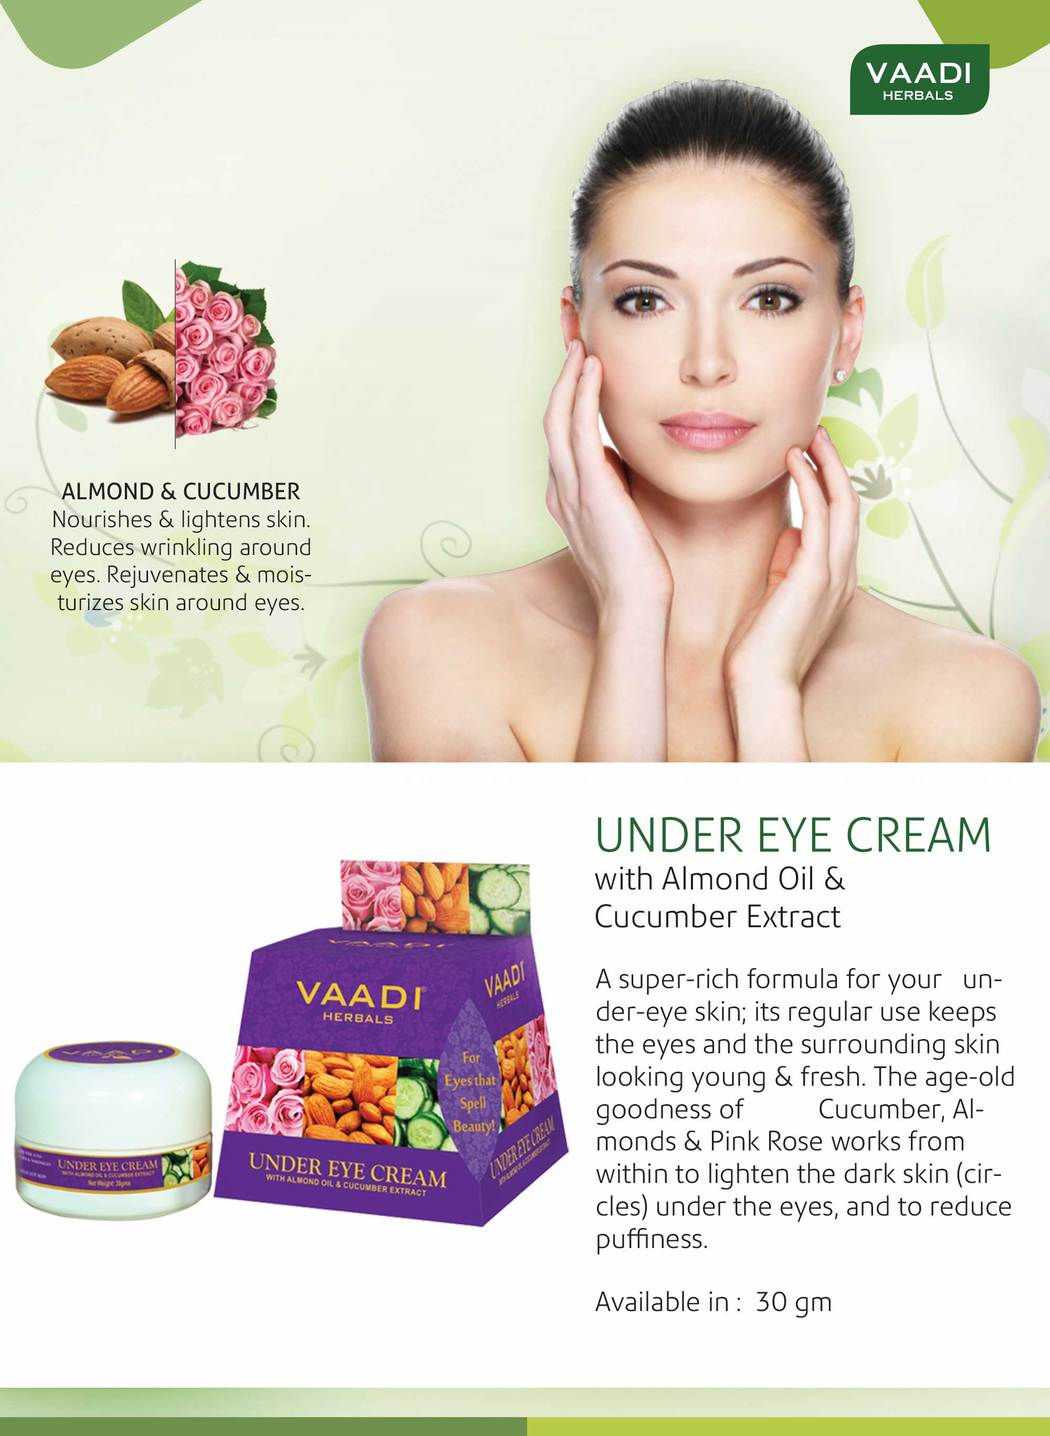 Organic Under Eye Cream with Almond Oil & Cucumber Extract - Reduces Puffiness - Keeps Skin Youthful (30 gms /1.1 oz)